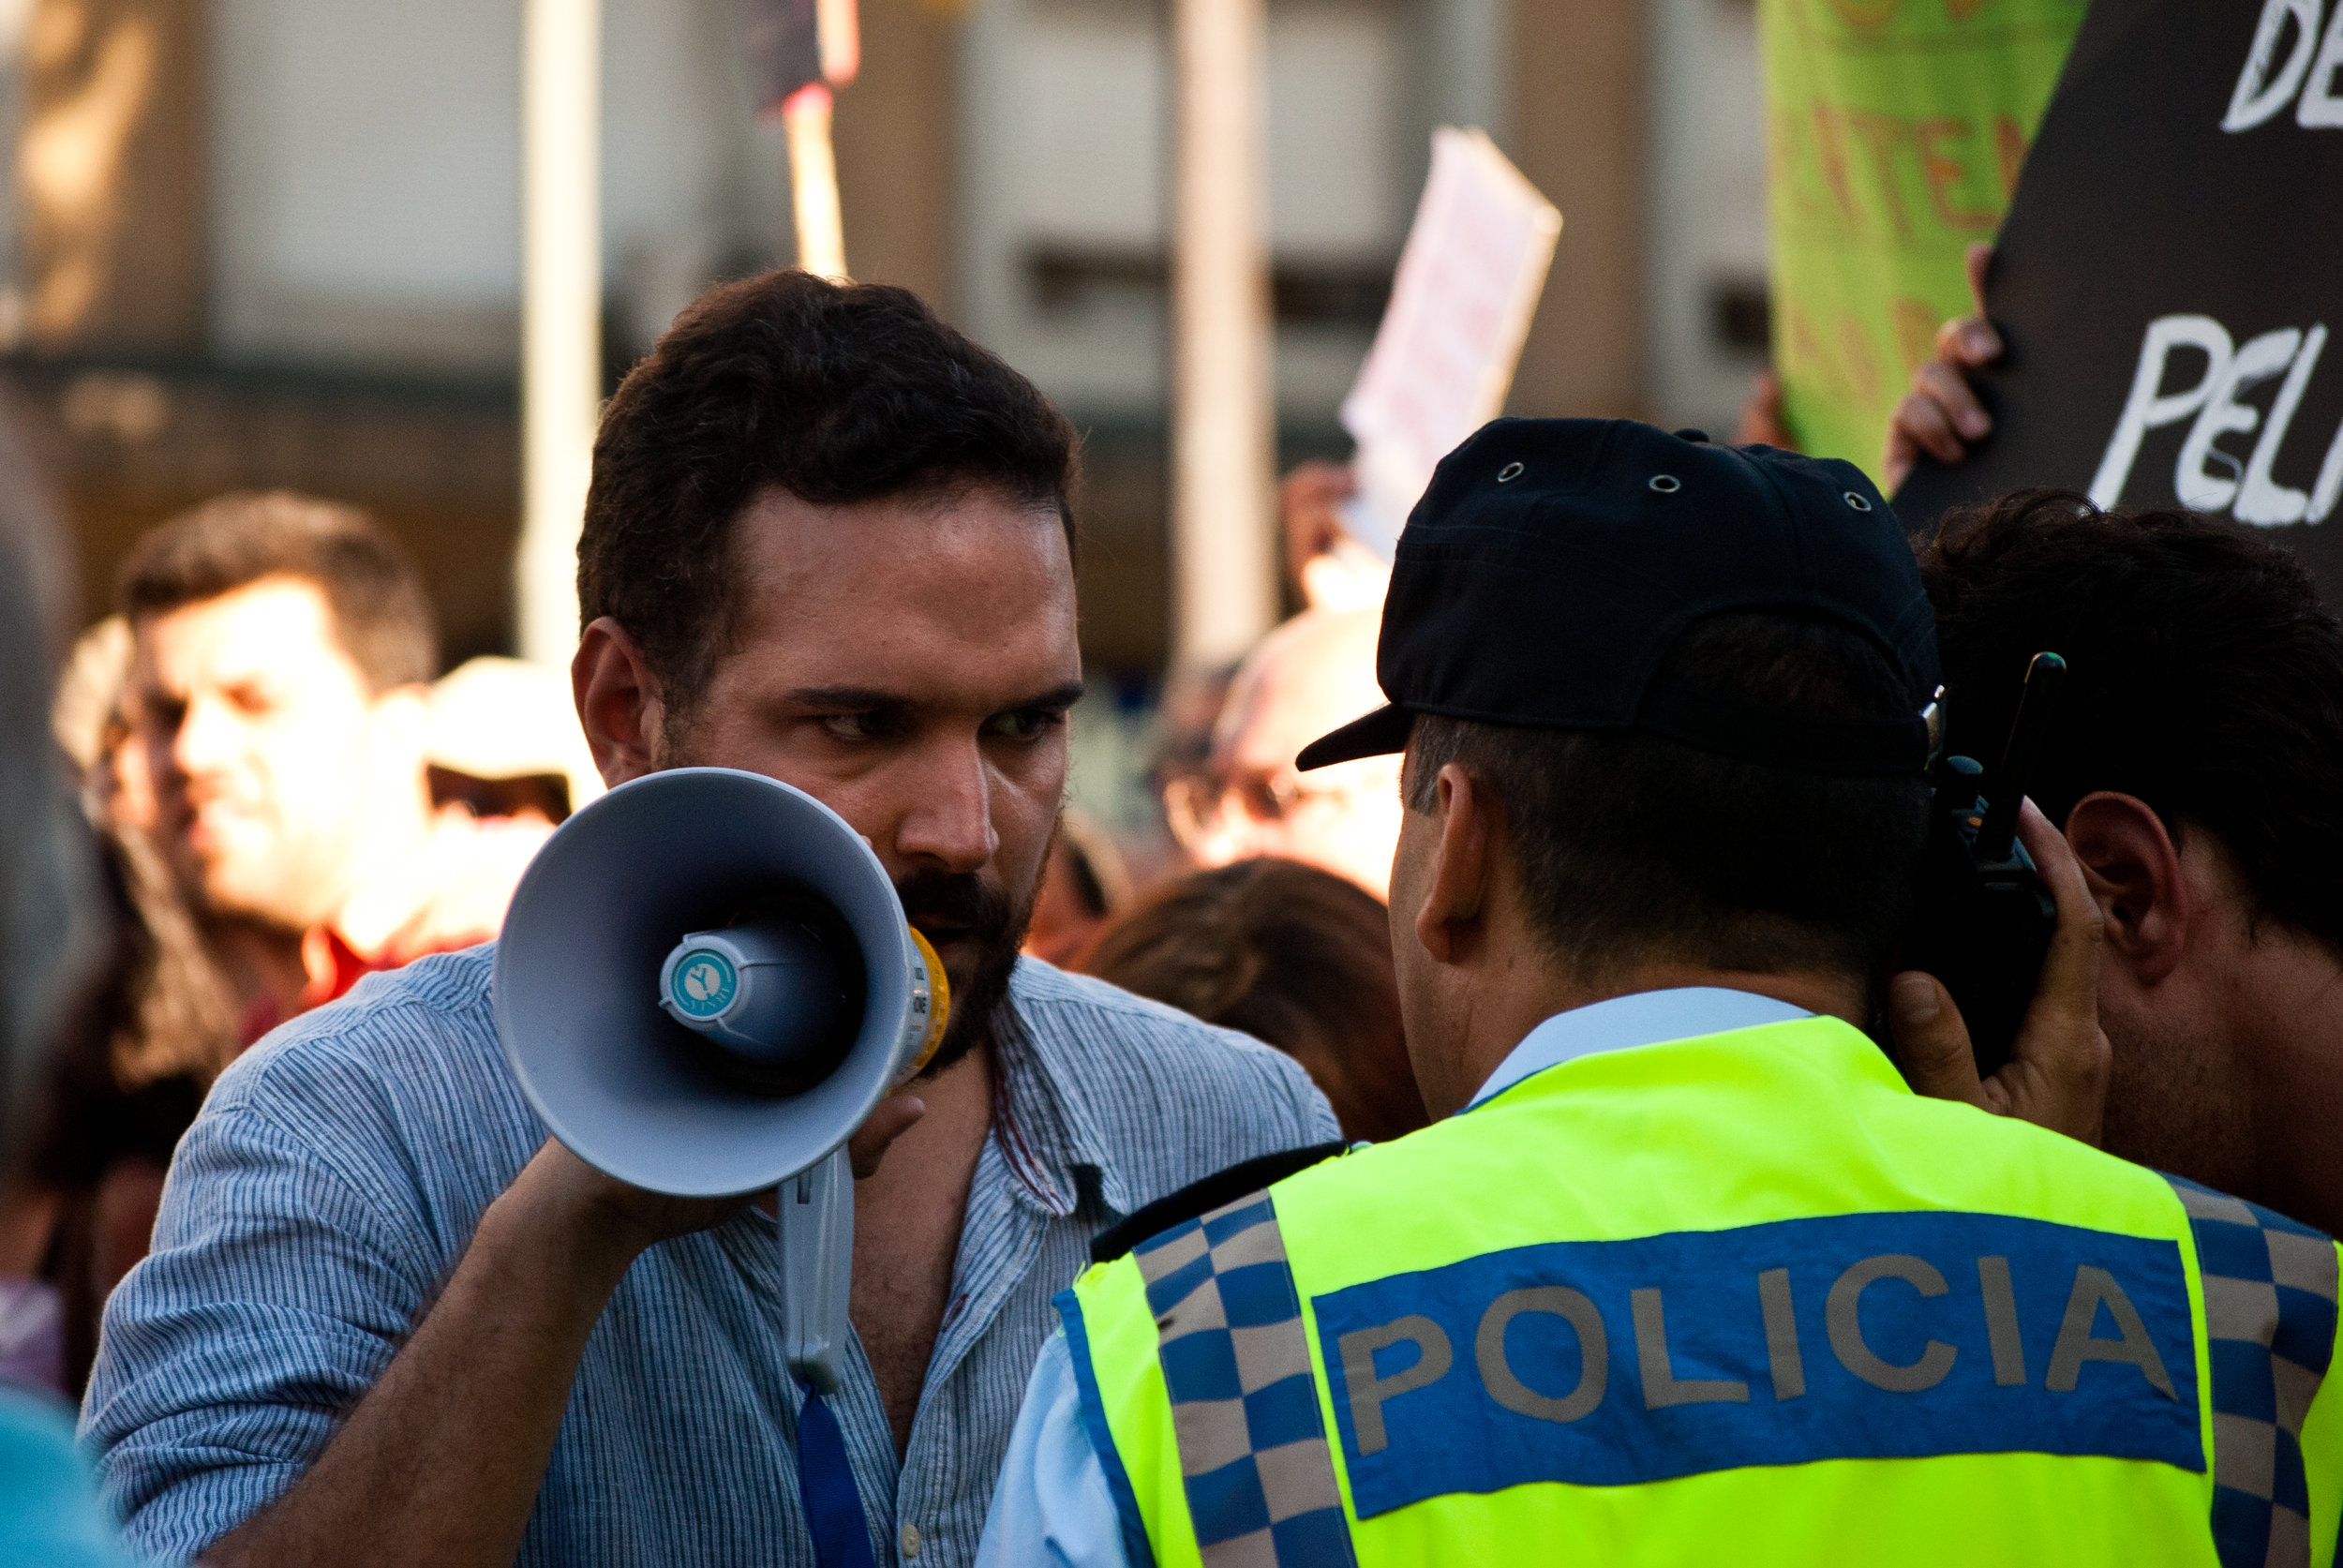 15/09/2012, One of the protest's having a confrontation with a policeman. More than 100,000 people took to the streets of Lisbon and other Portuguese cities to protest against fresh austerity measures recently announced by the centre-right government.